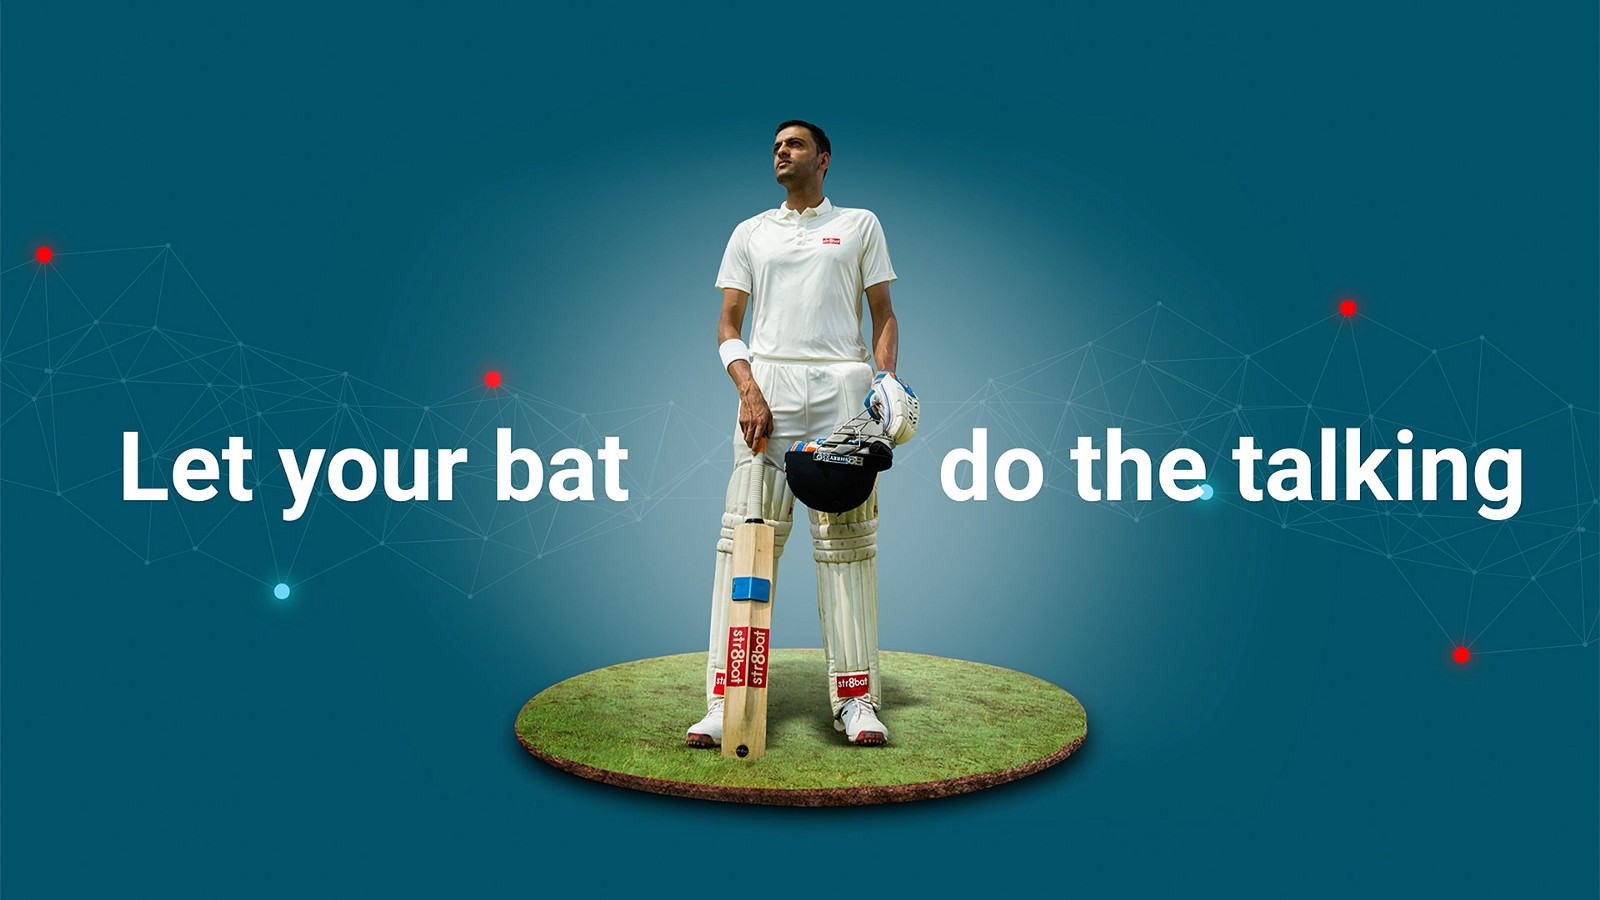 Cricketer holding a bat equipped with str8bat IoT